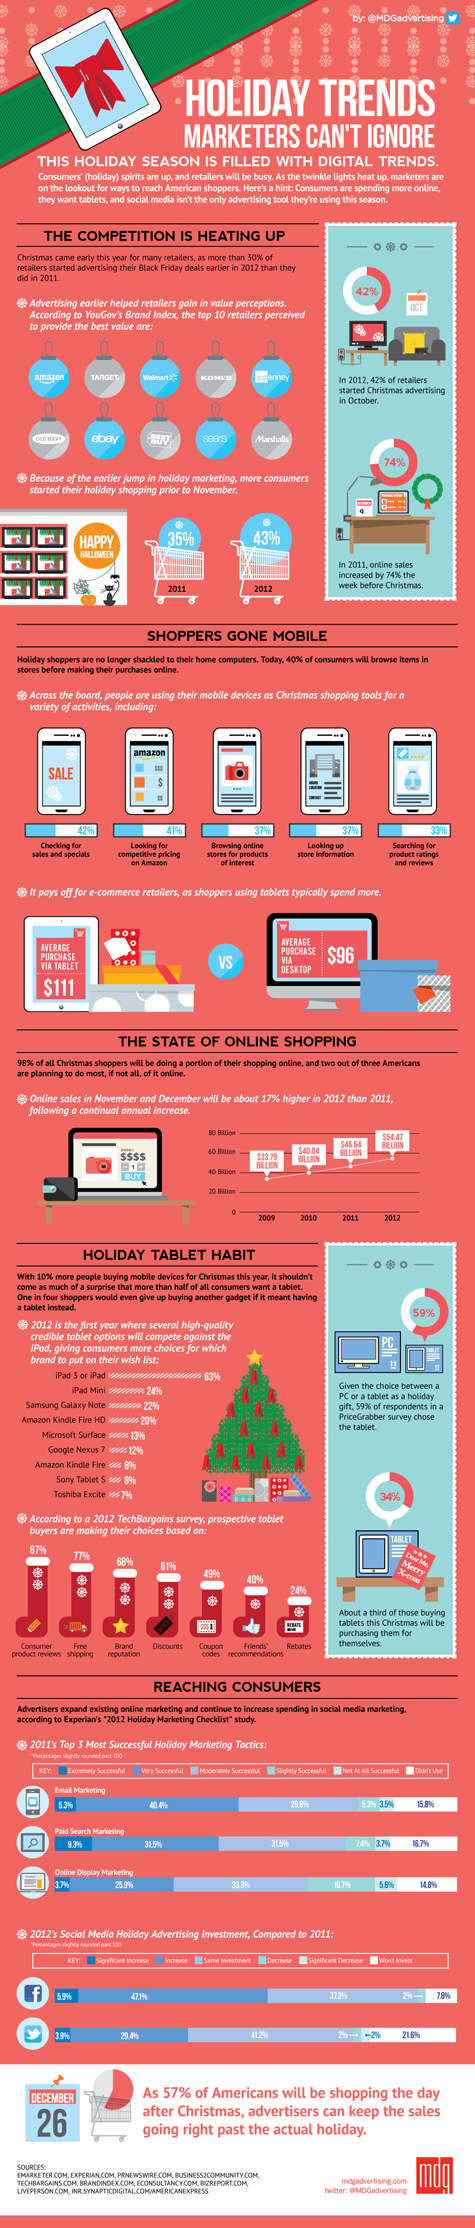 Holiday Trends Marketers Cant Ignore MDG Infographic 475